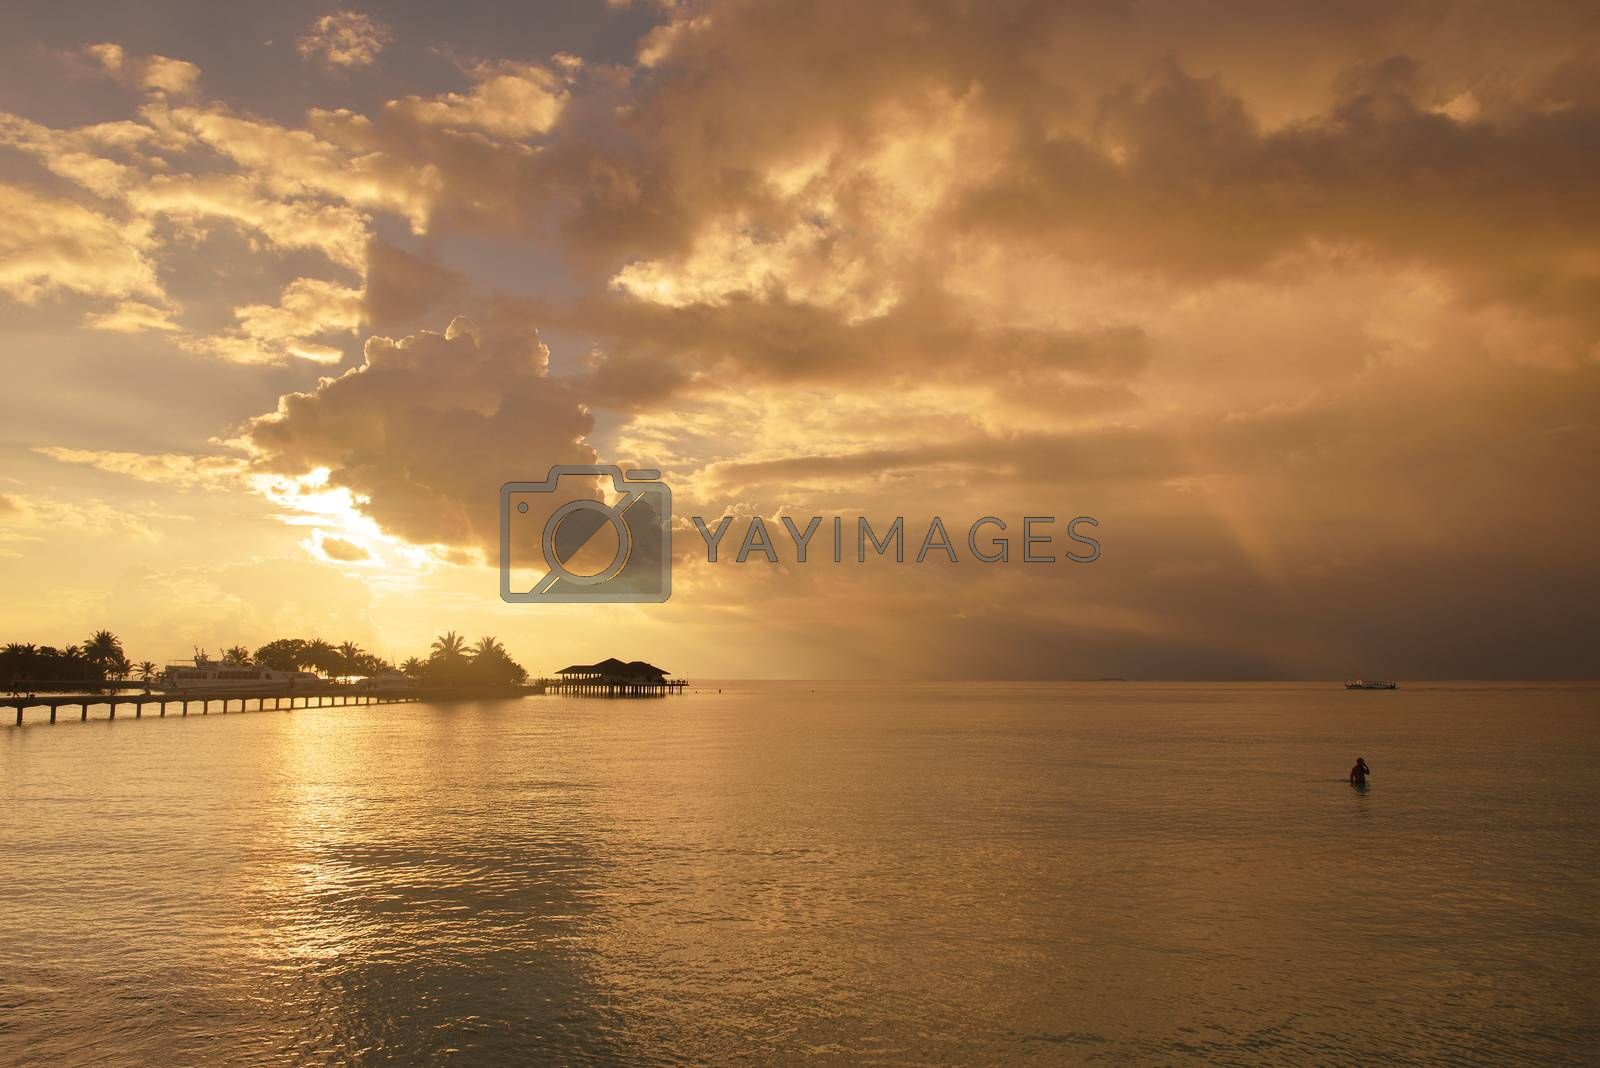 tropical beach nature landscape scene with white sand at summer